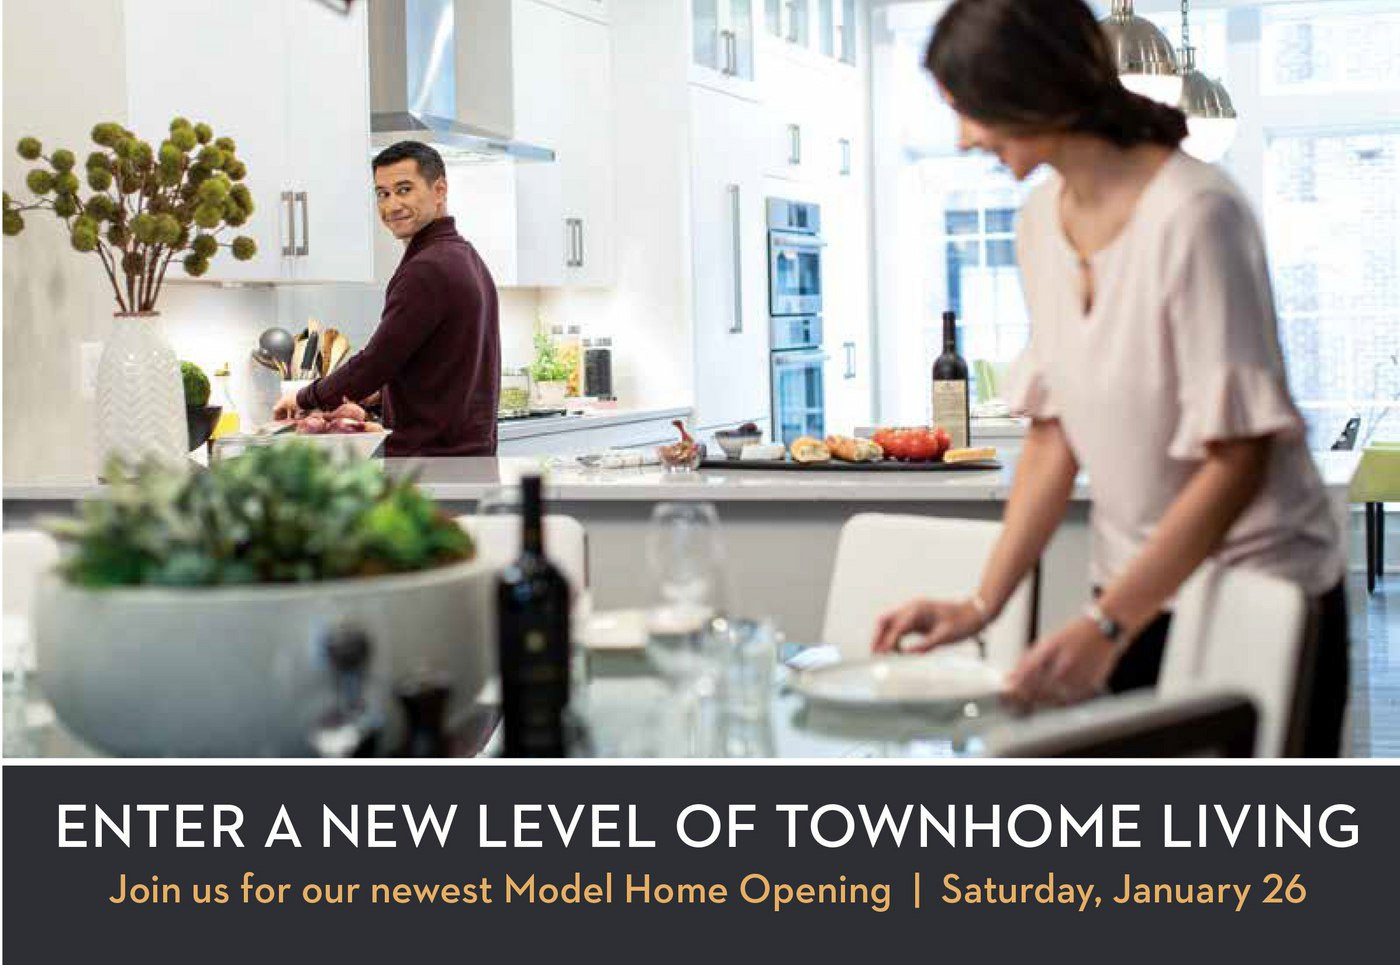 Stanford model home grand opening: January 26